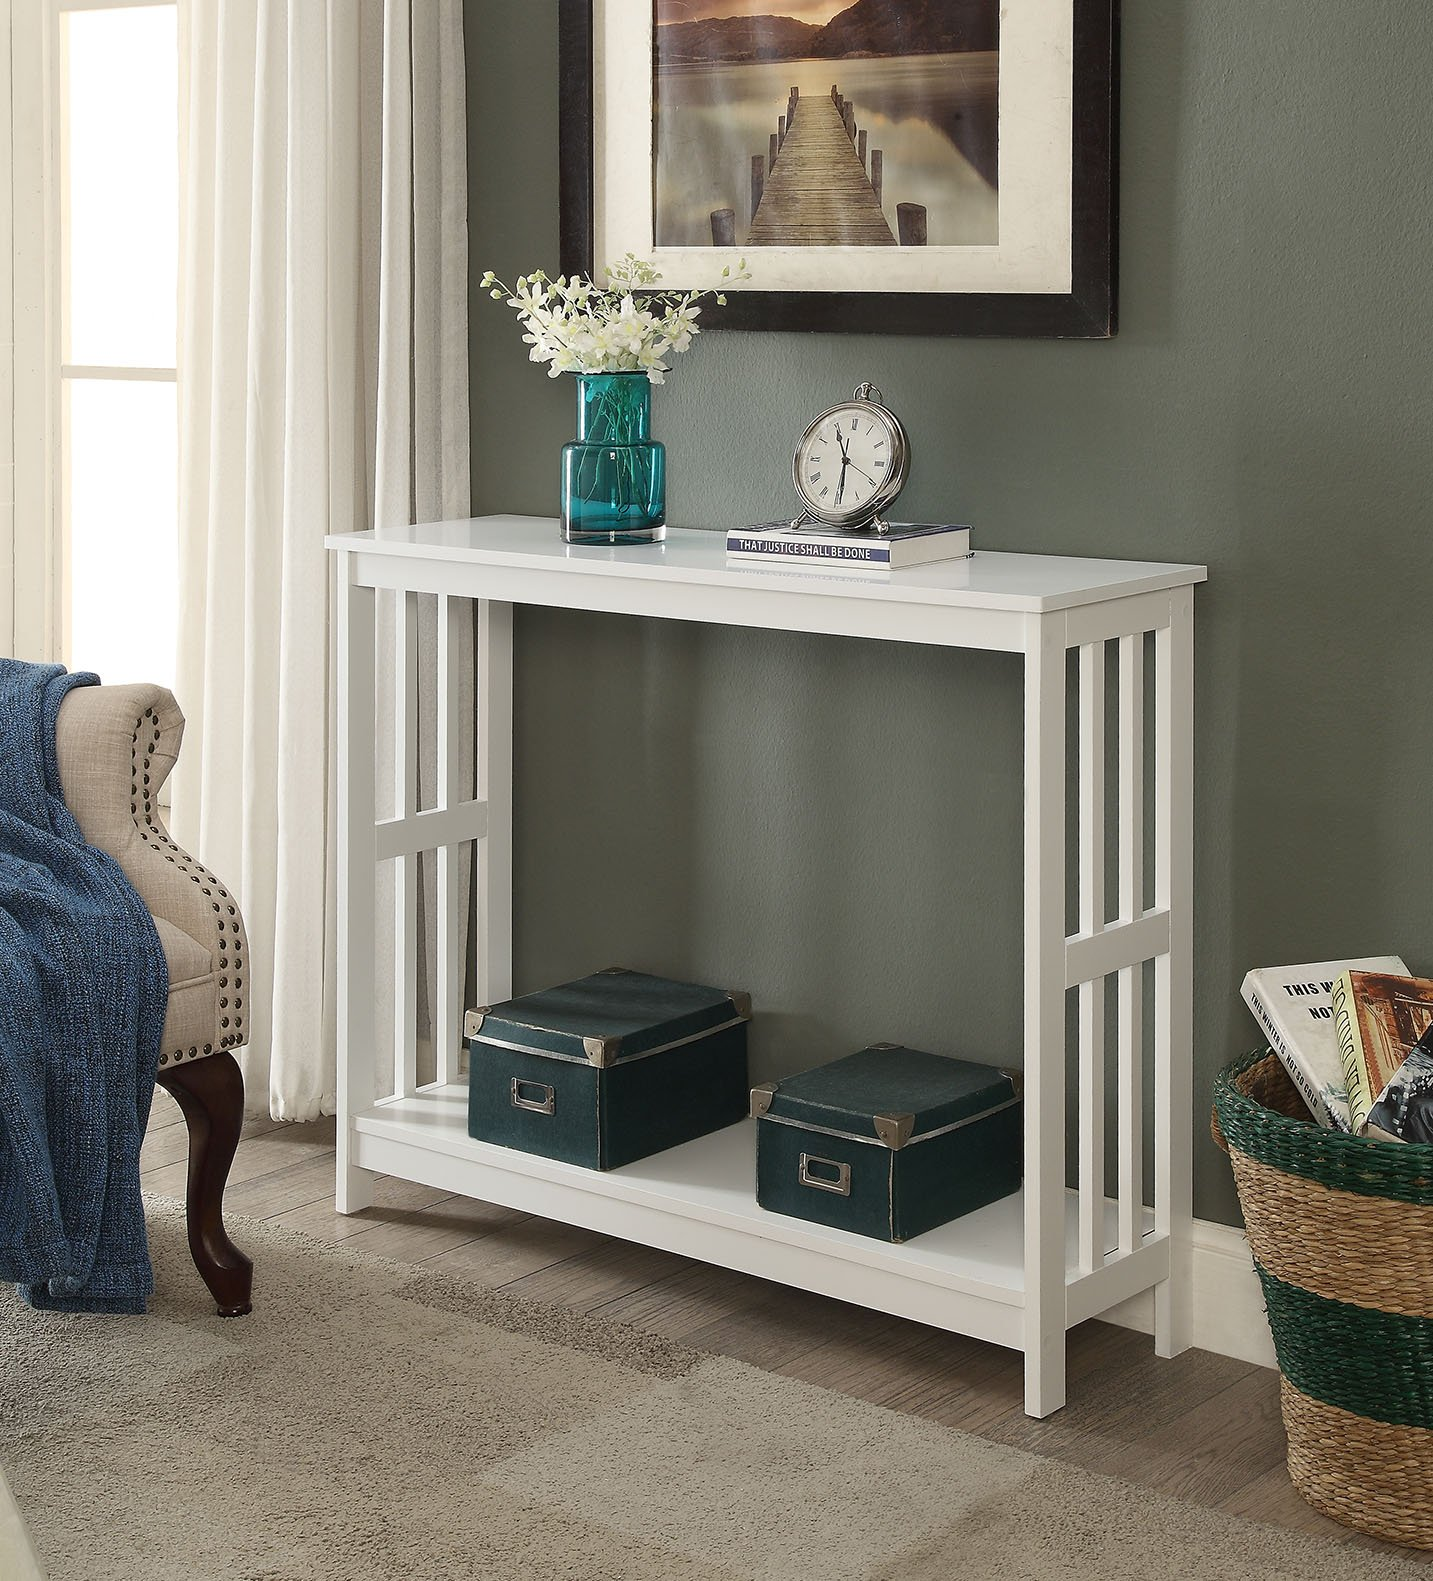 White Finish 2-Tier Occasional Console Sofa Table Bookshelf by eHomeProducts